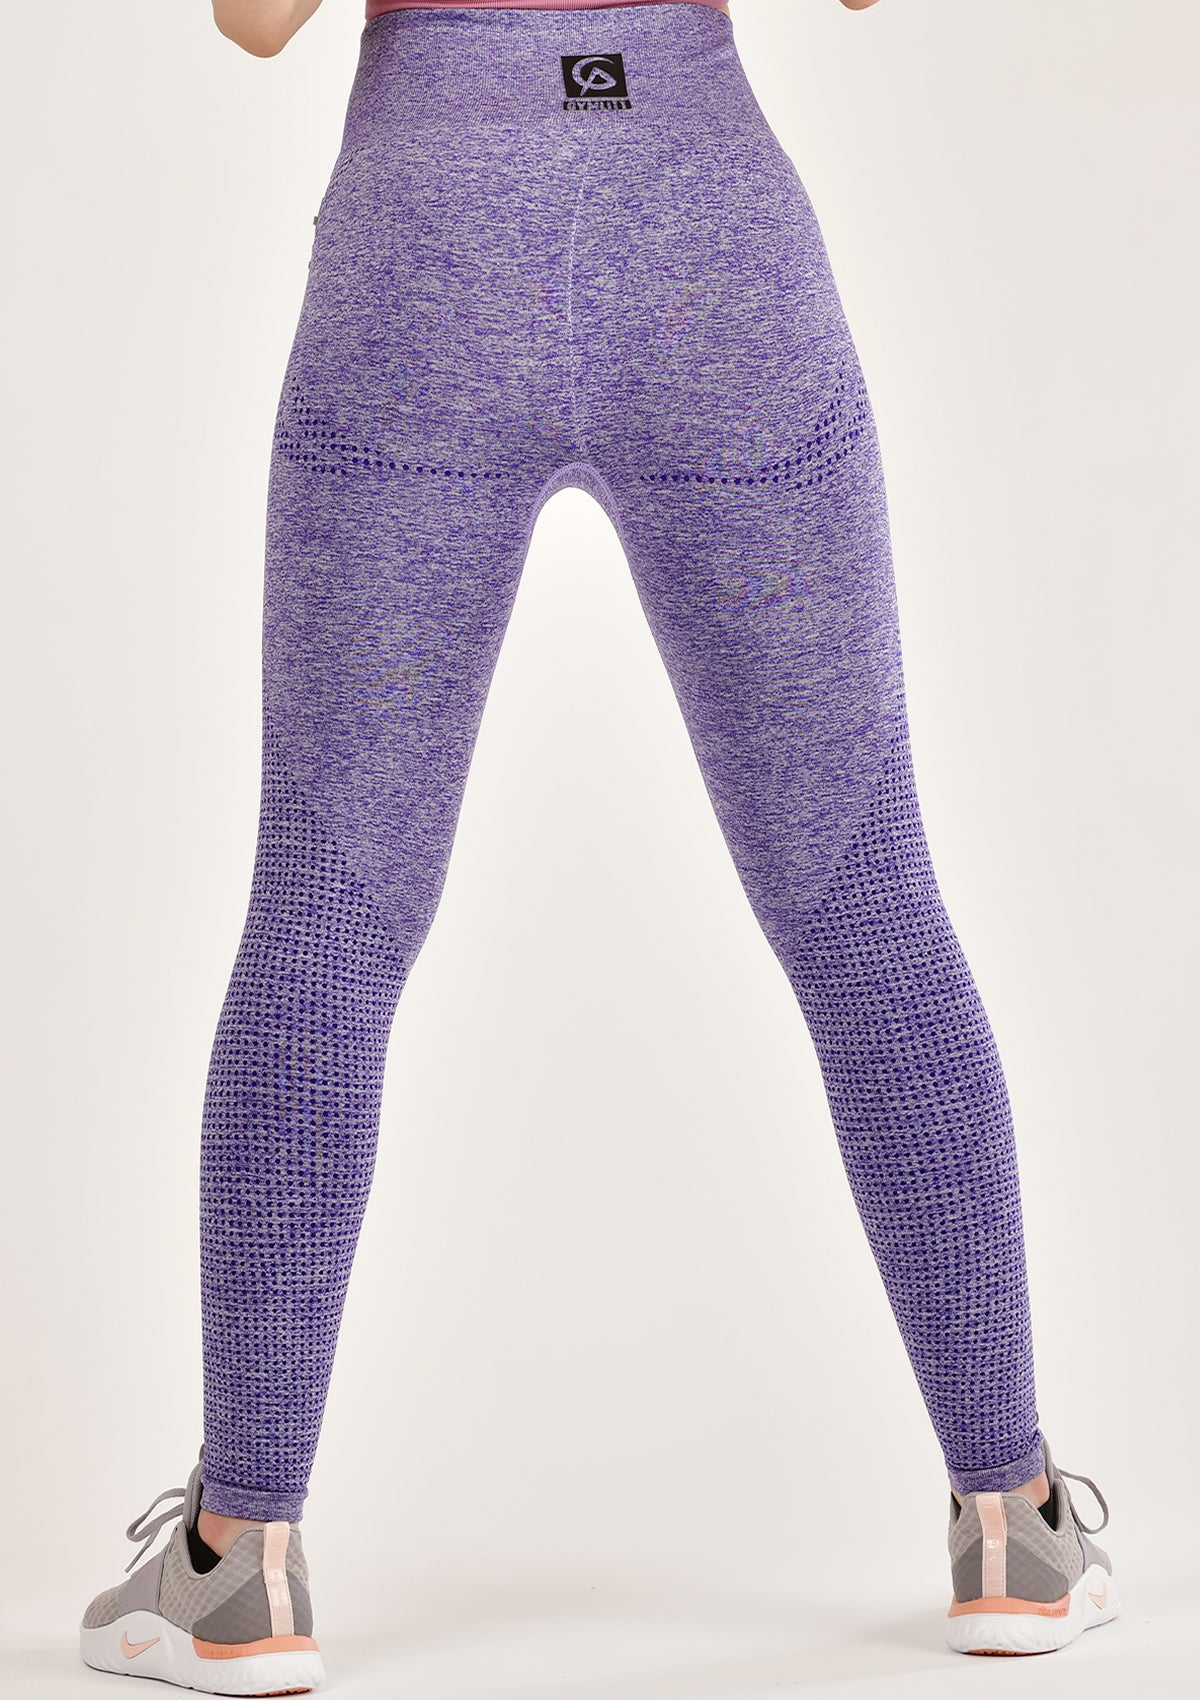 illusive Purple Leggings